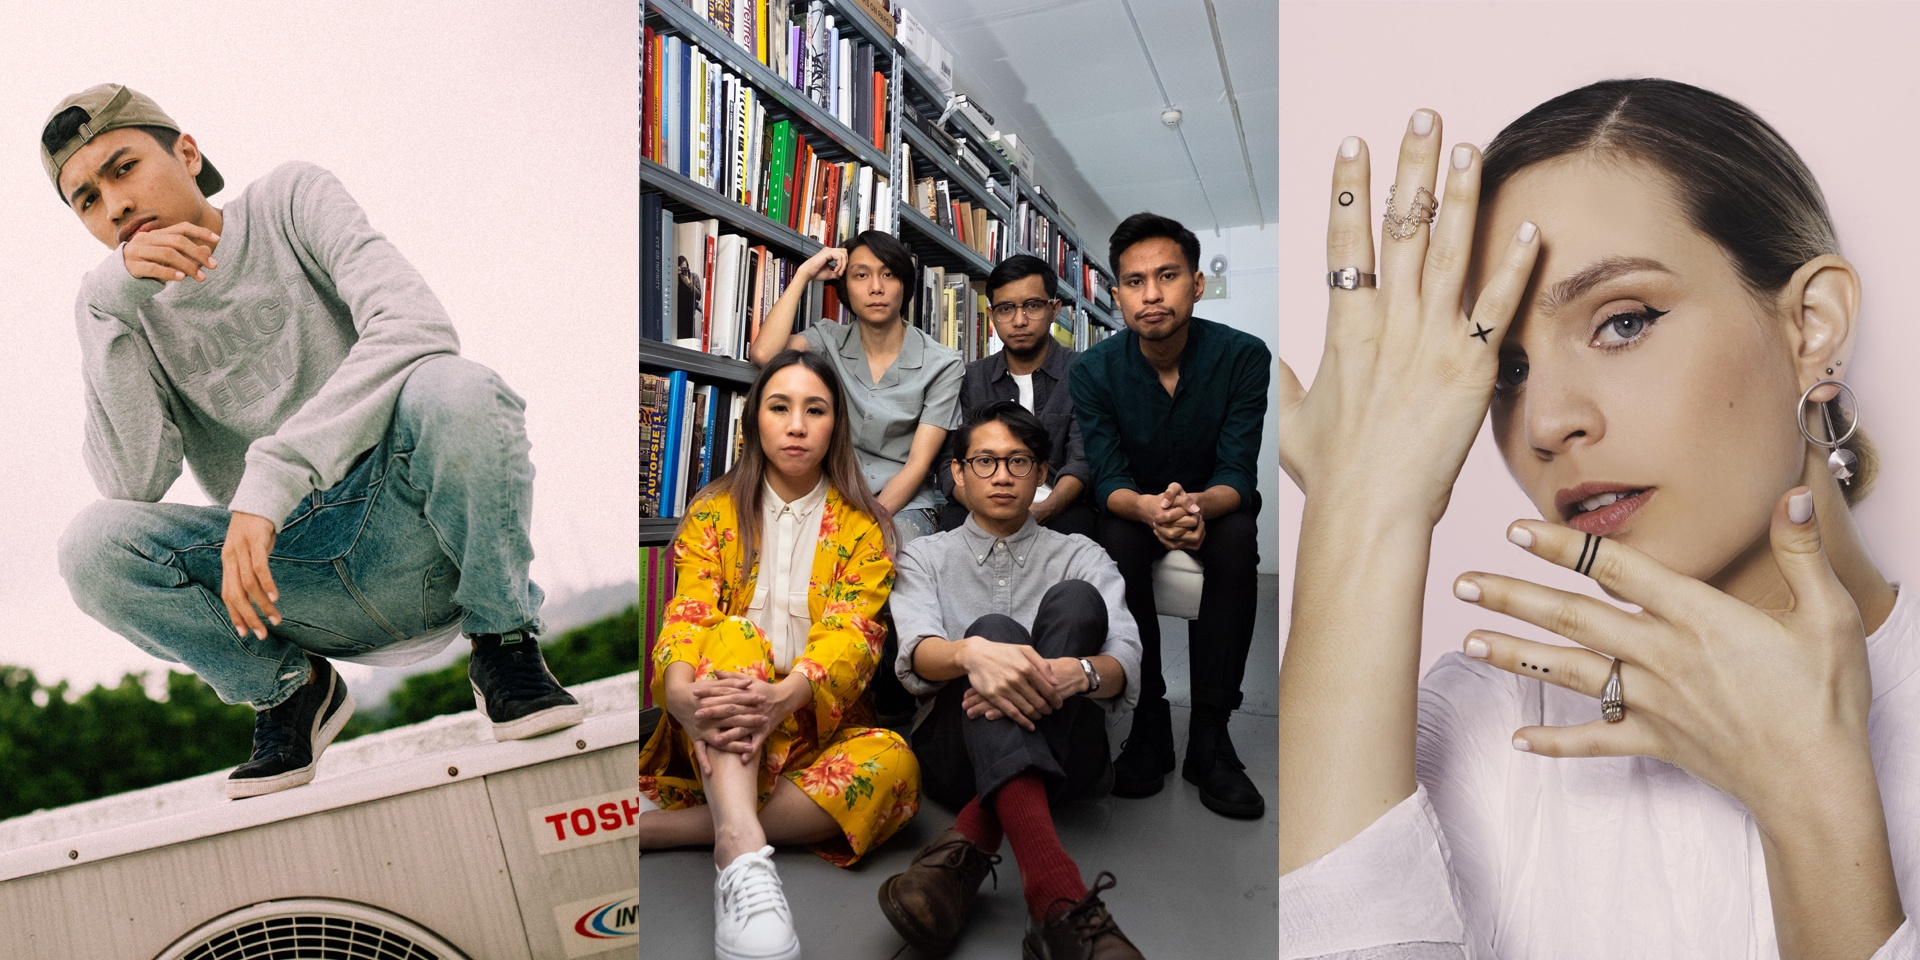 Talking to the team behind Baybeats about the surprises on 2018's lineup, festival history and more